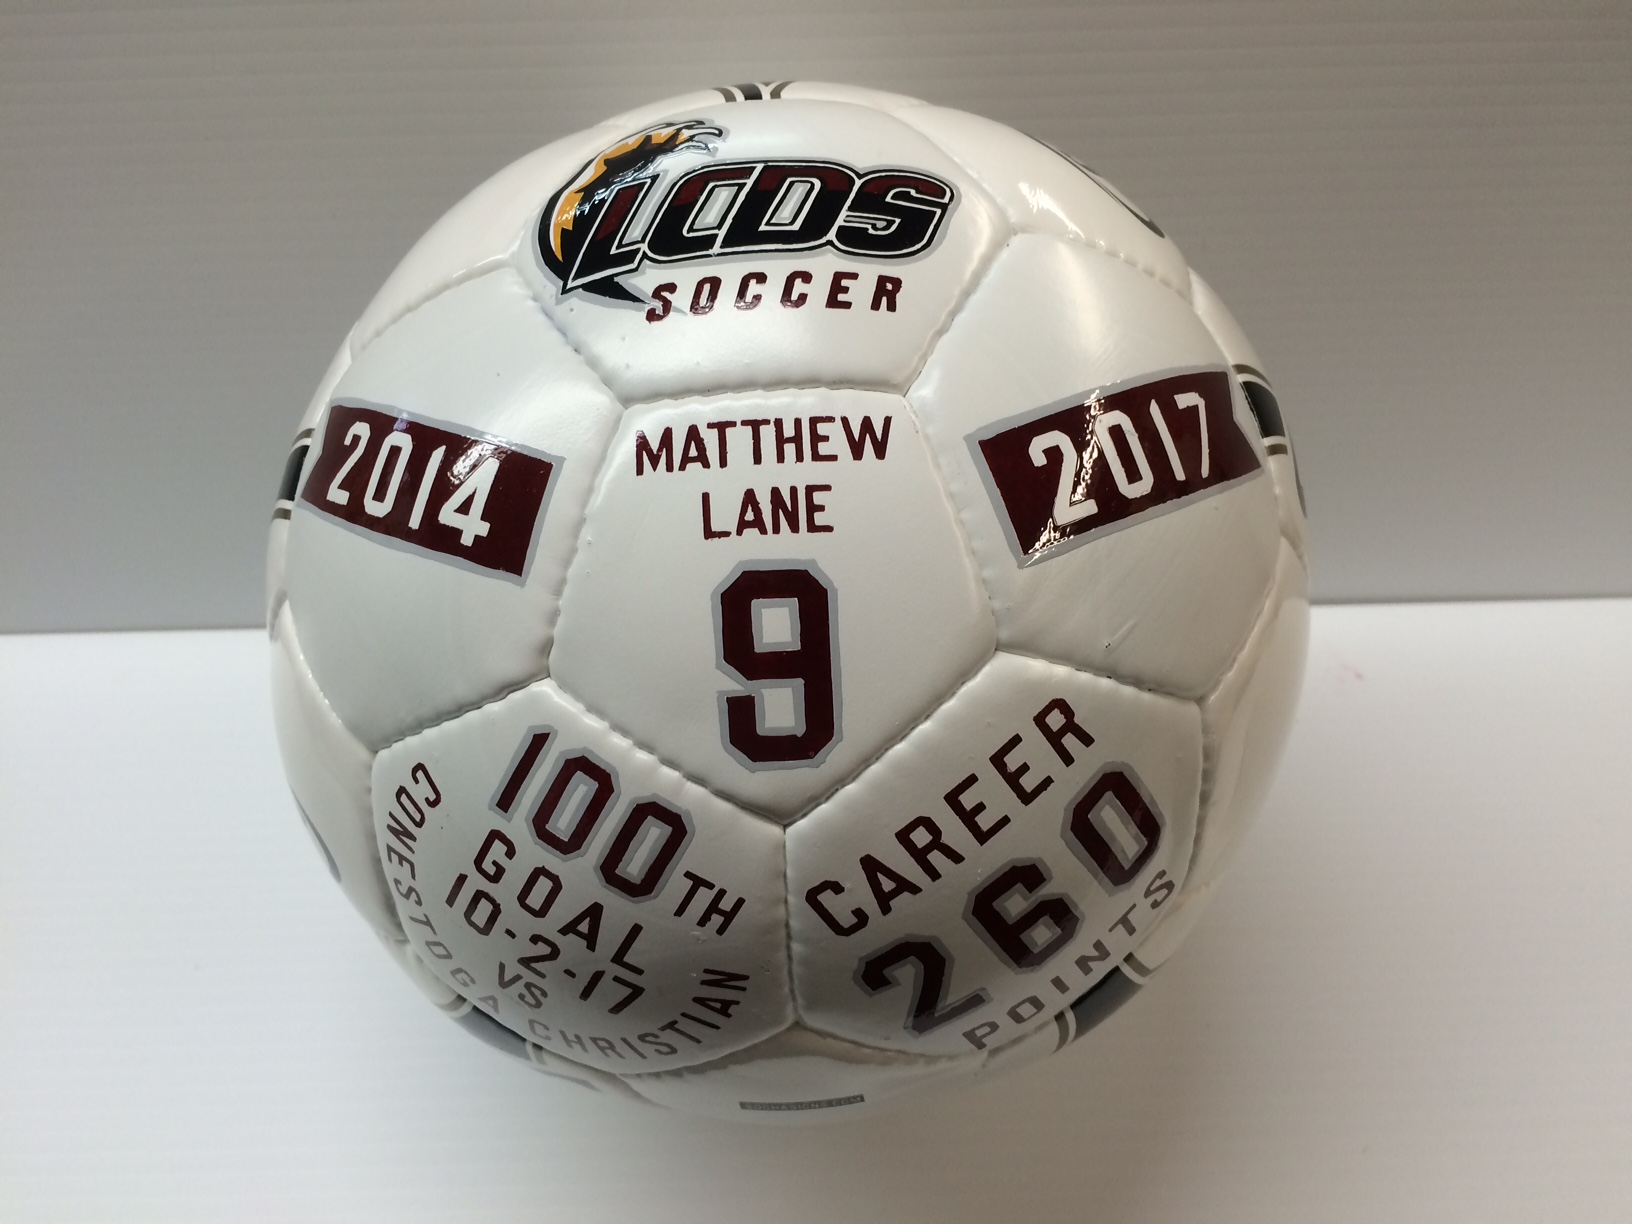 Decorated soccer ball award